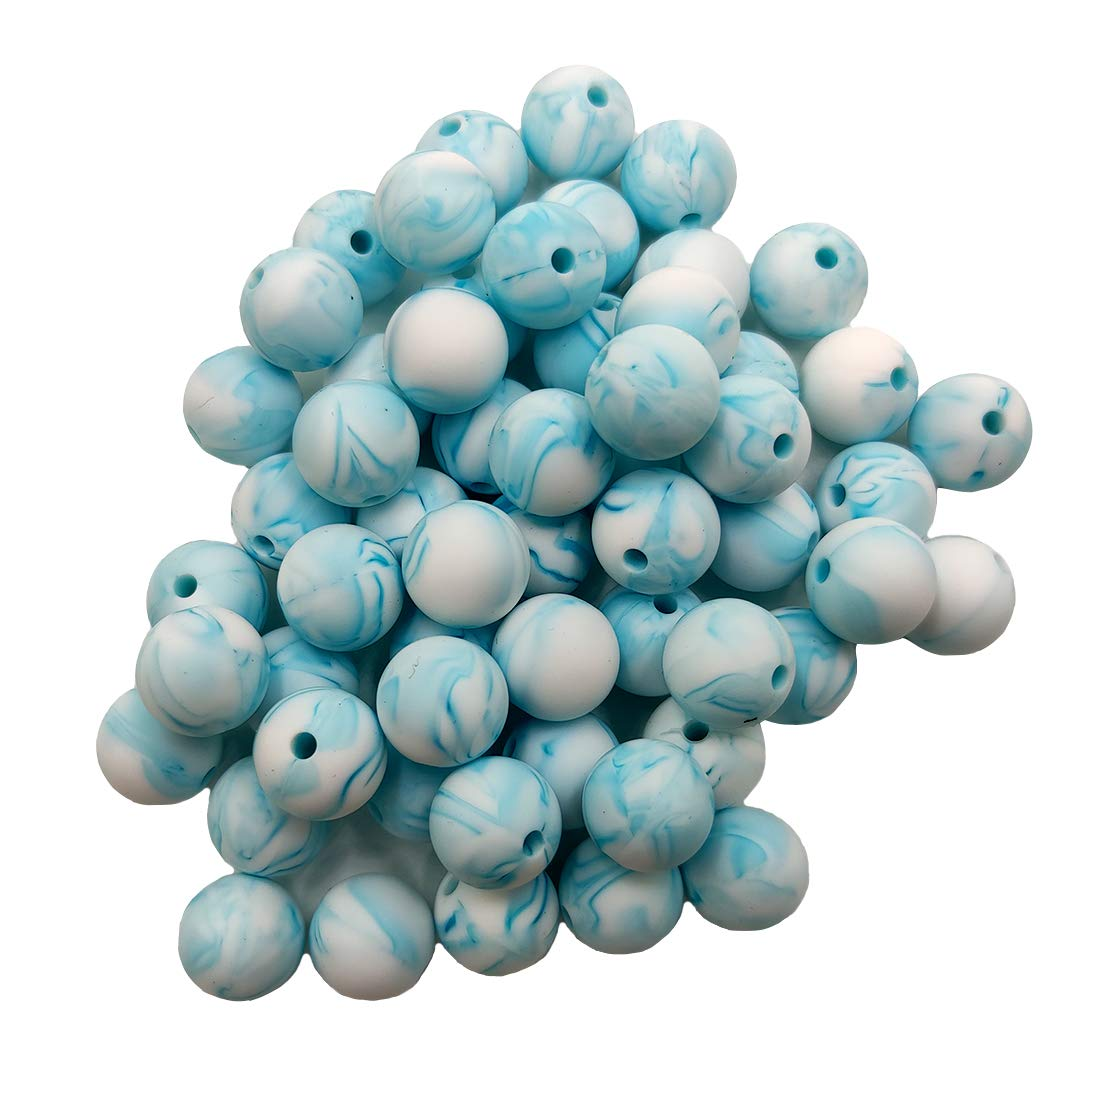 50pcs Marble Teal Color Silicone Round Beads Sensory 15mm Silicone Pearl Bead Bulk Mom Necklace DIY Jewelry Making Decoration